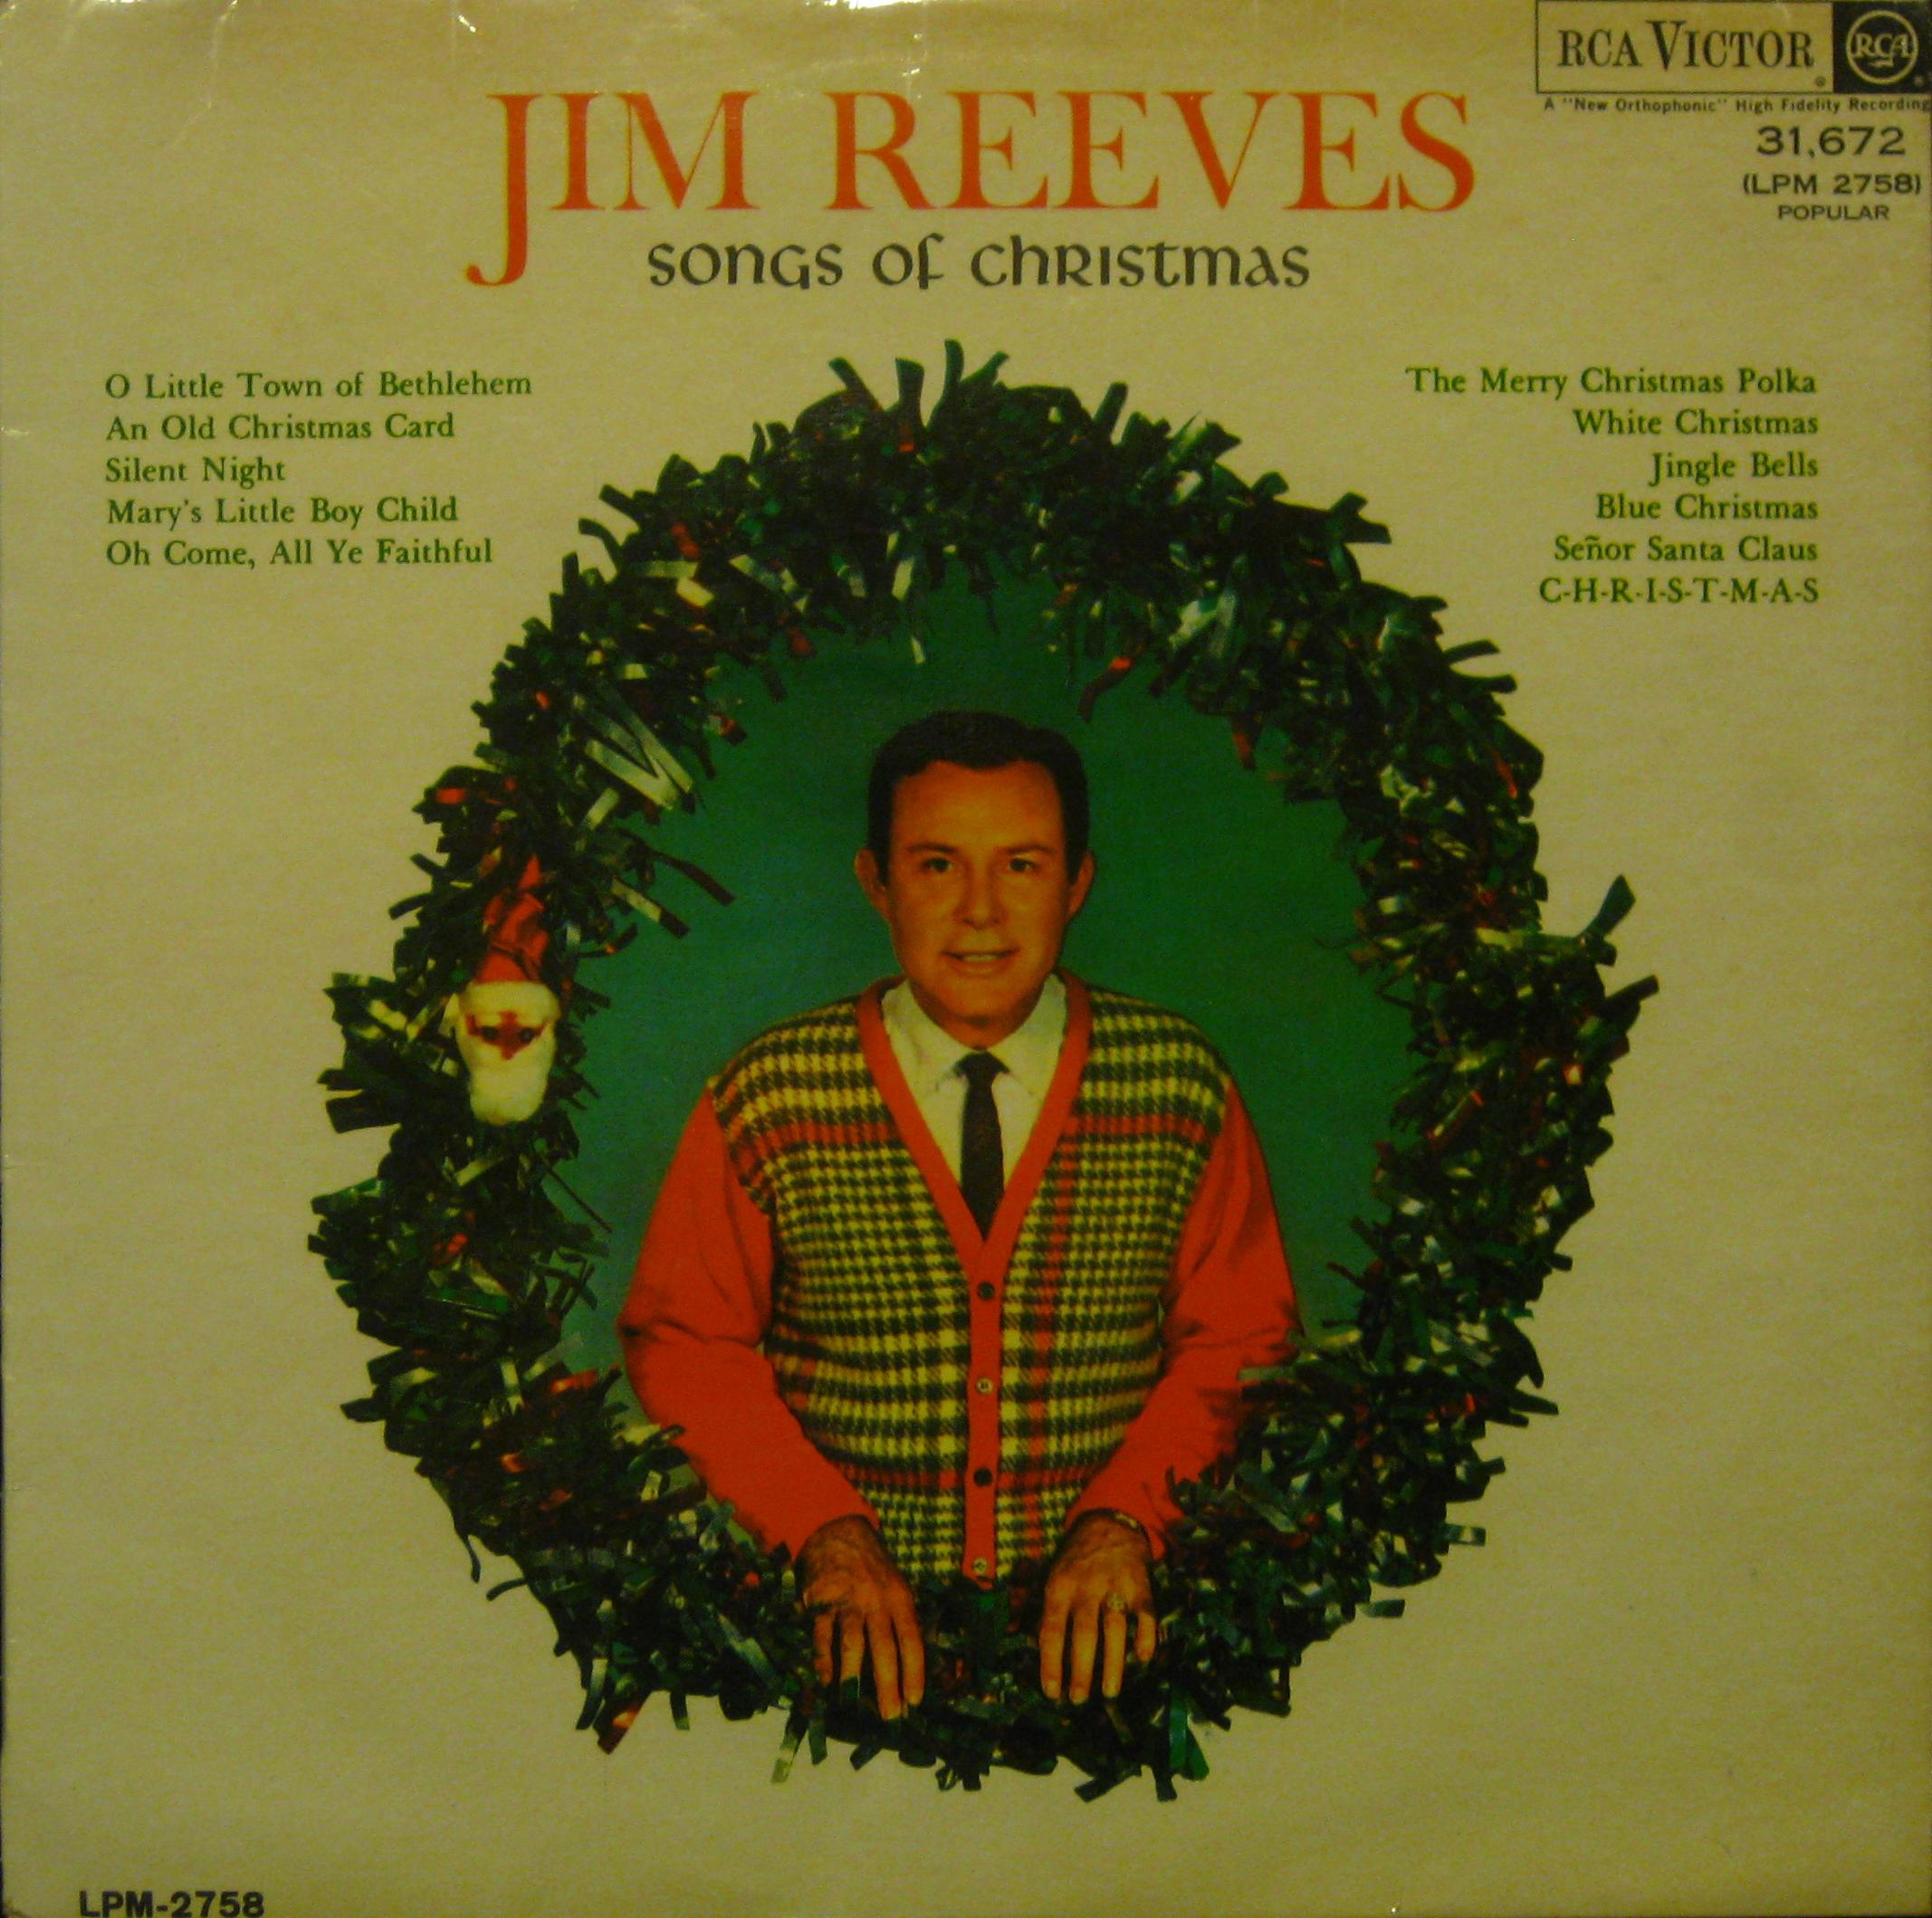 JIM REEVES SOUTH AFRICANCHRISTMAS LP